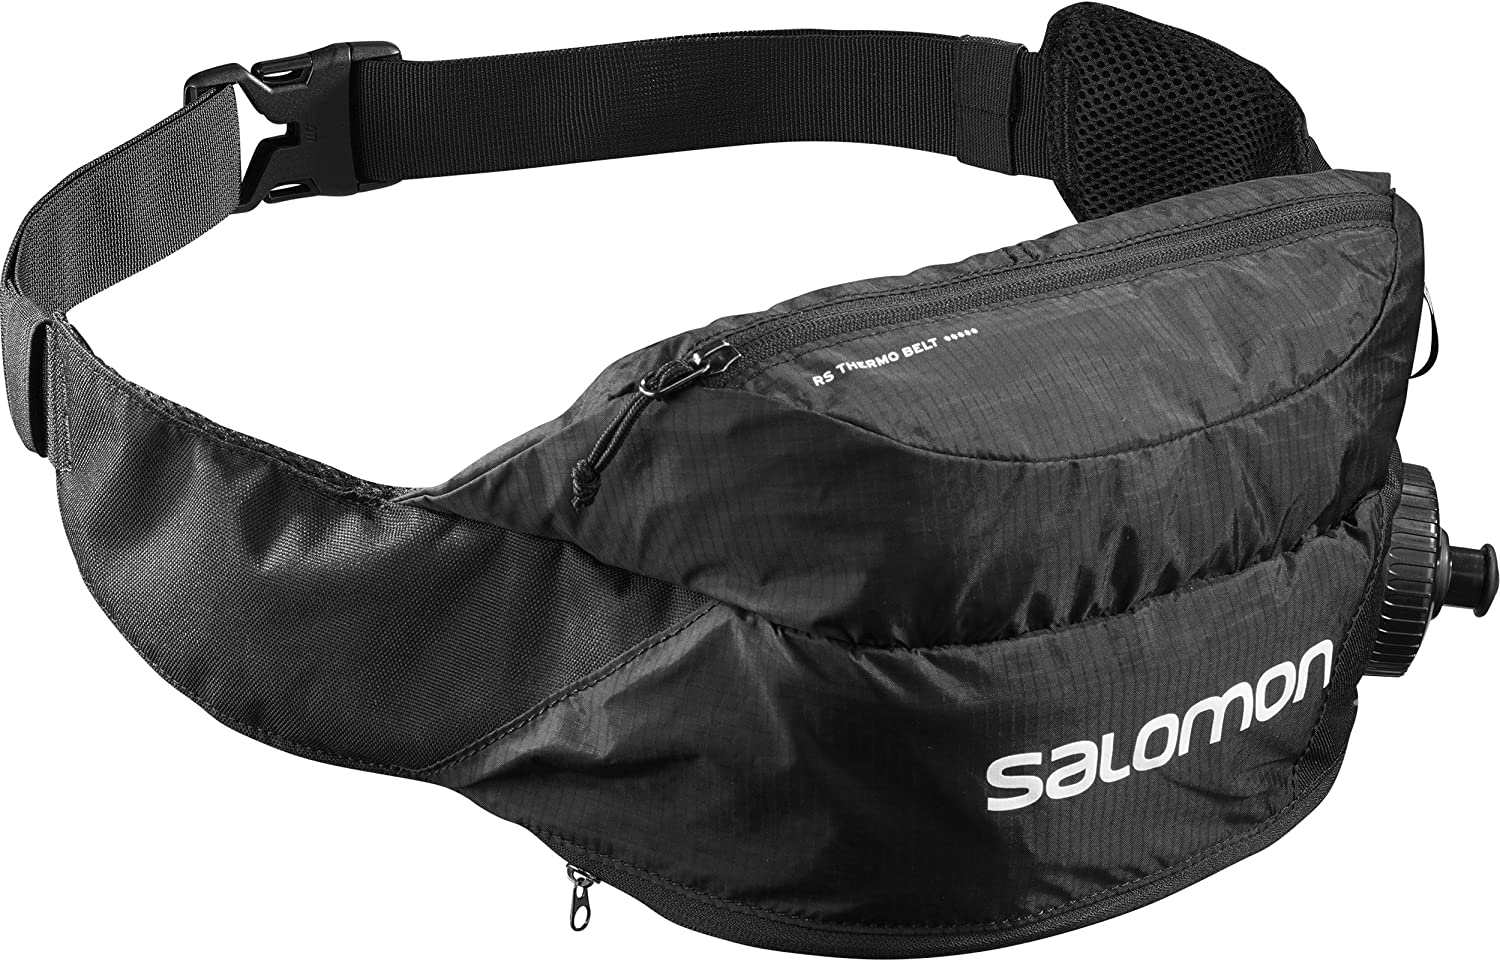 Salomon Unisex Rs Thermobelt